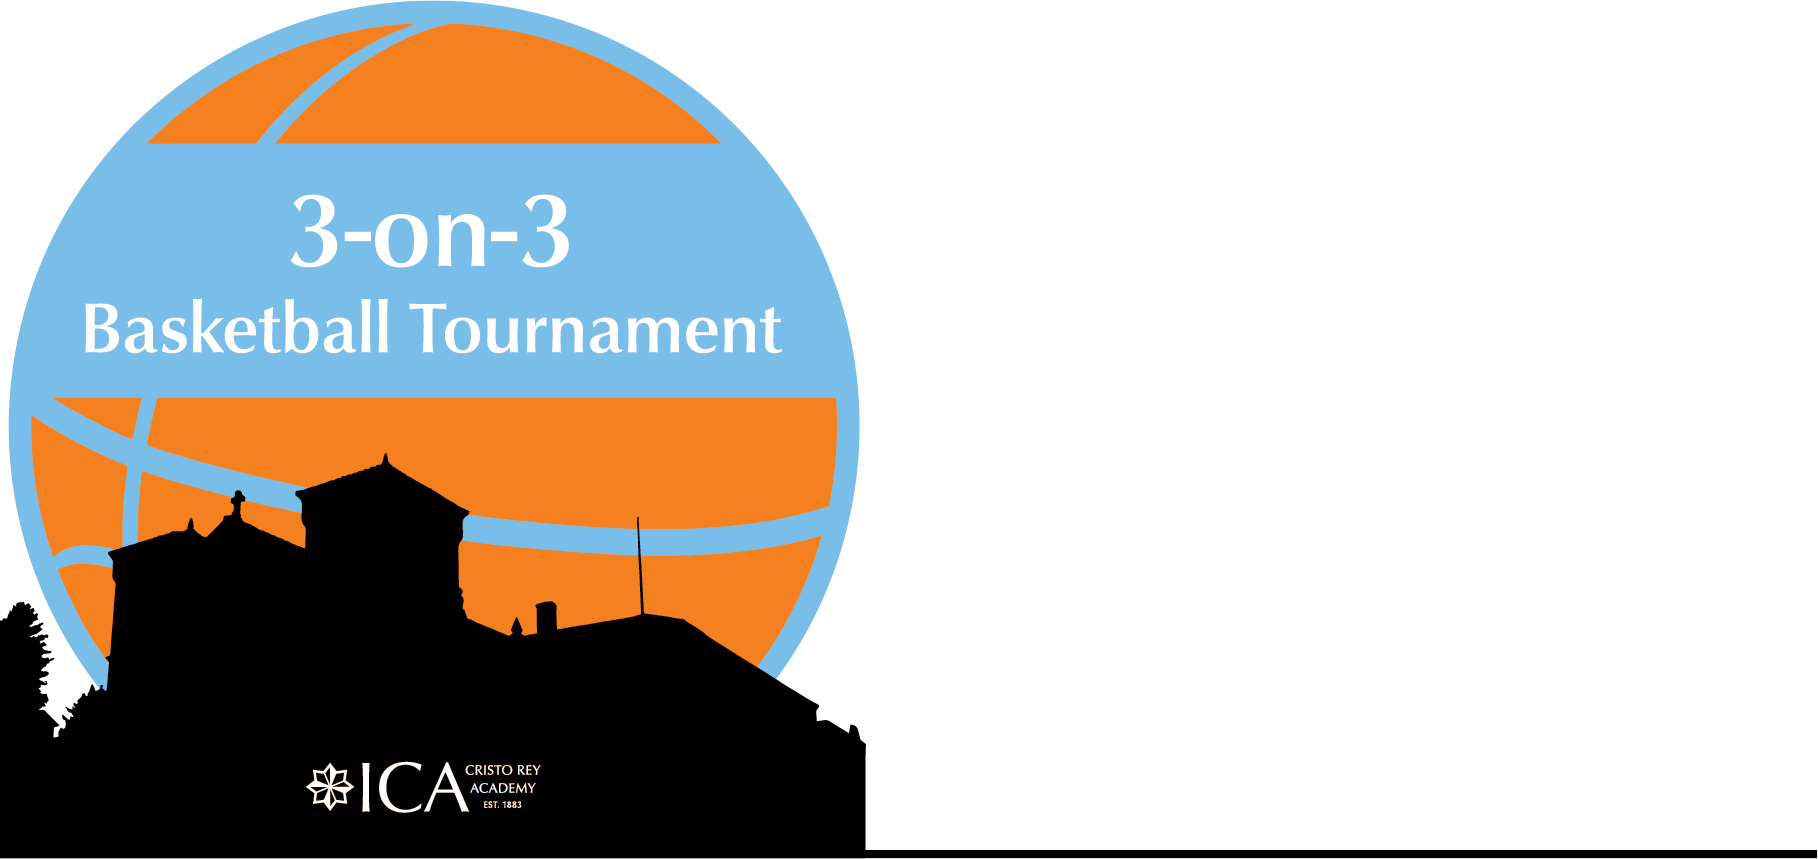 3rd Annual 3-on-3 Basketball Tournament